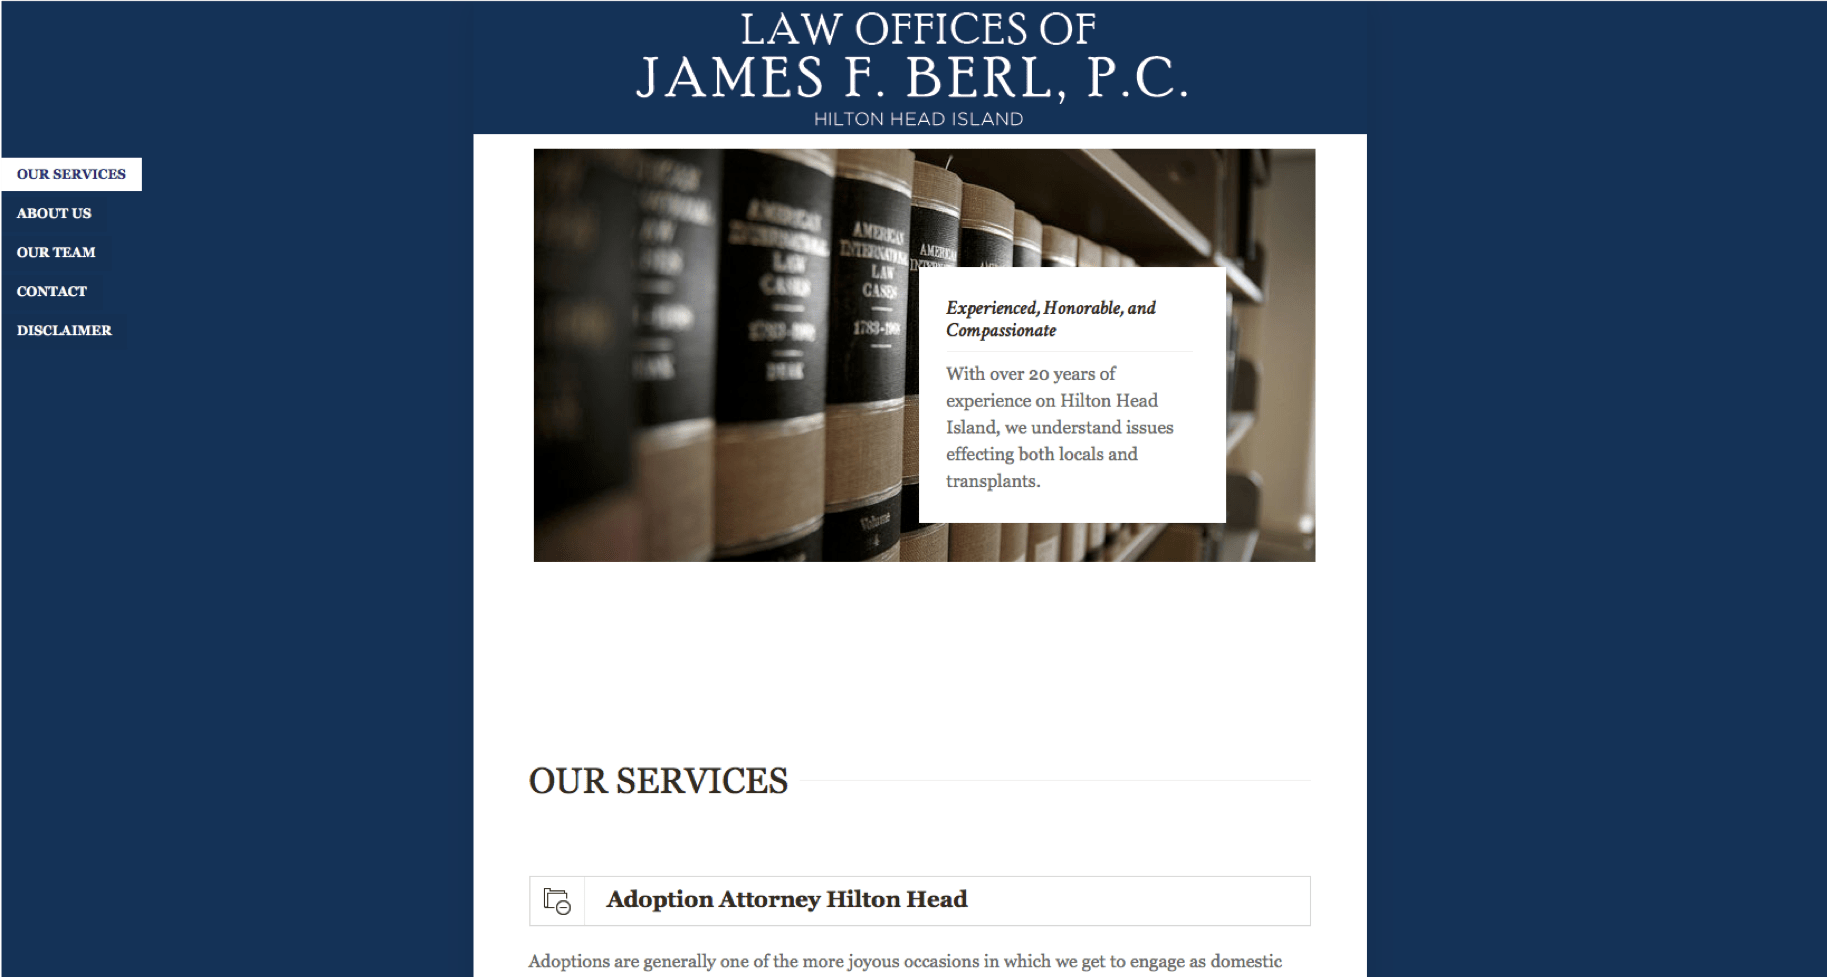 law offices of james f berl